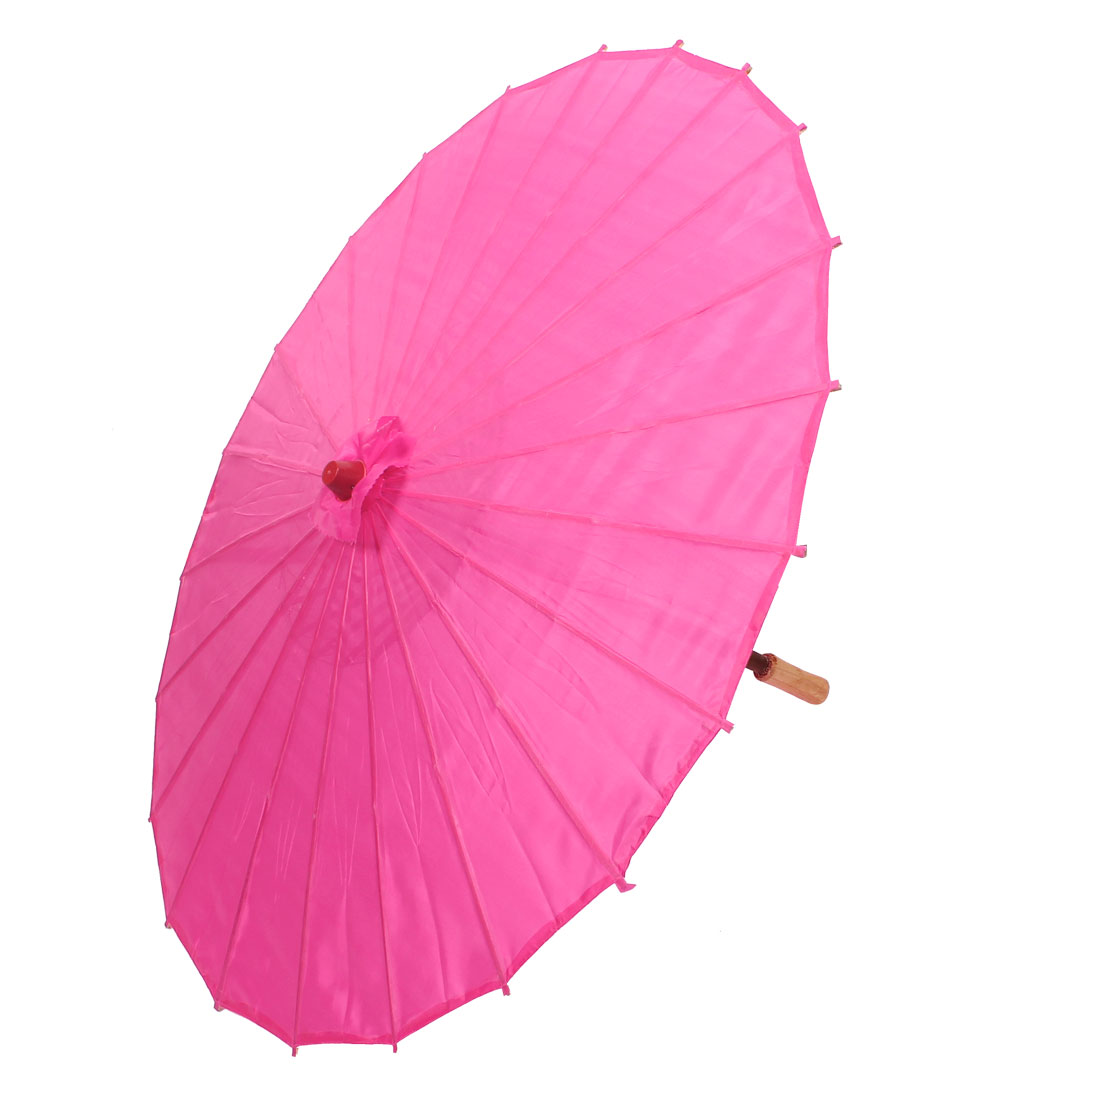 Bamboo Japanese Chinese Style Traditional Manually Dancing Umbrella Parasol Fuchsia 78cm Dia